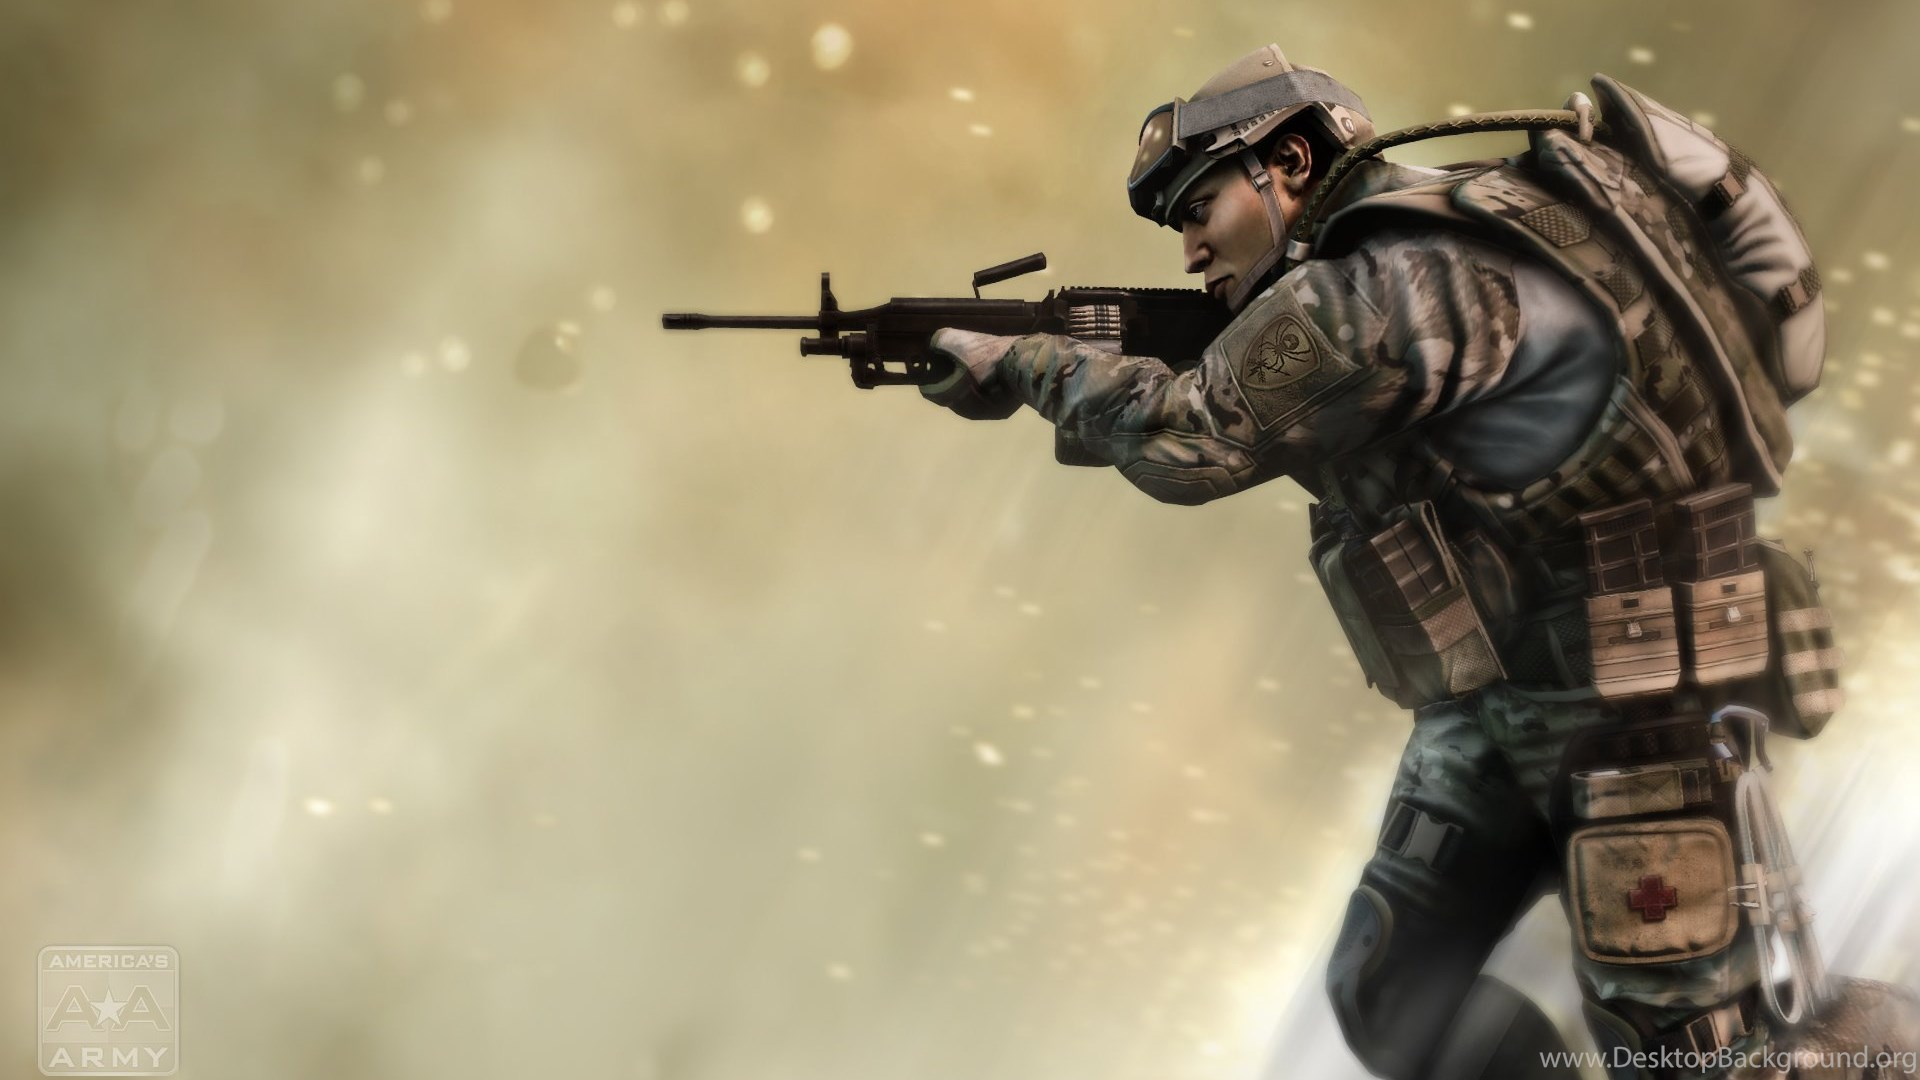 Indian Army Wallpapers Desktop Background